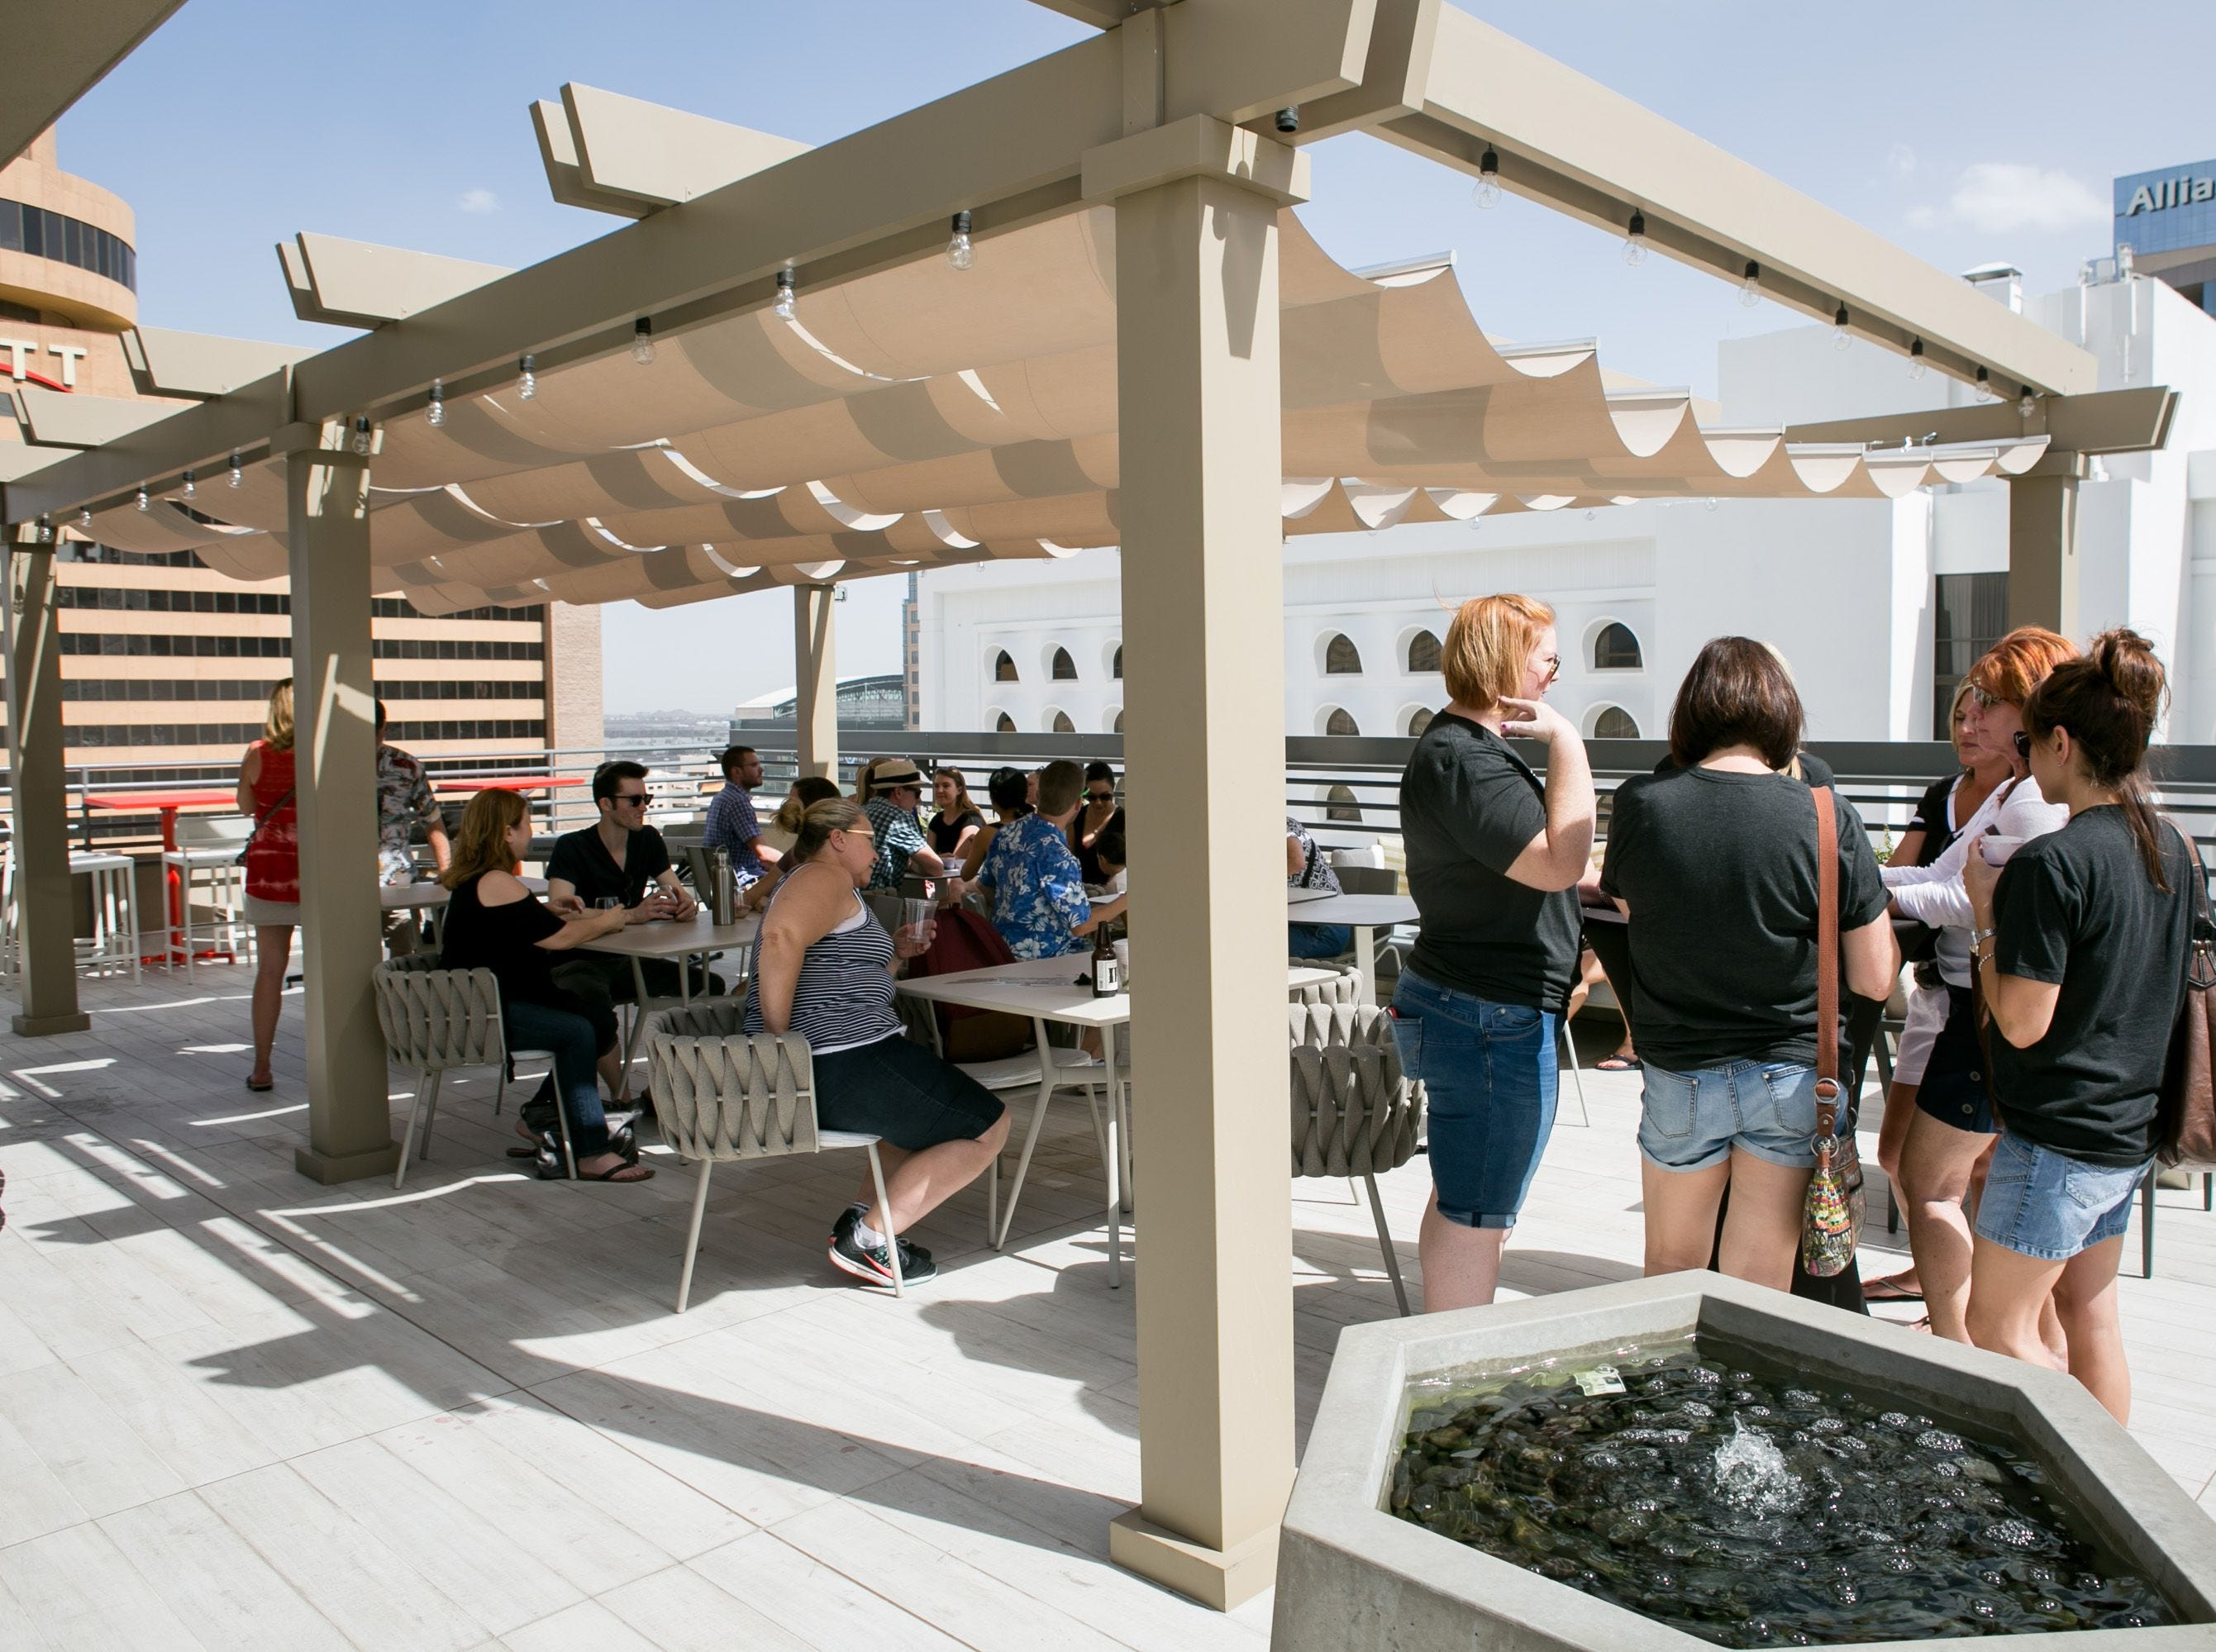 HAVE A DRINK AT A ROOFTOP BAR: Several Phoenix-area bars, including Floor 13 Rooftop Bar (pictured), around town offer a drink with a bird's eye view of the Valley.